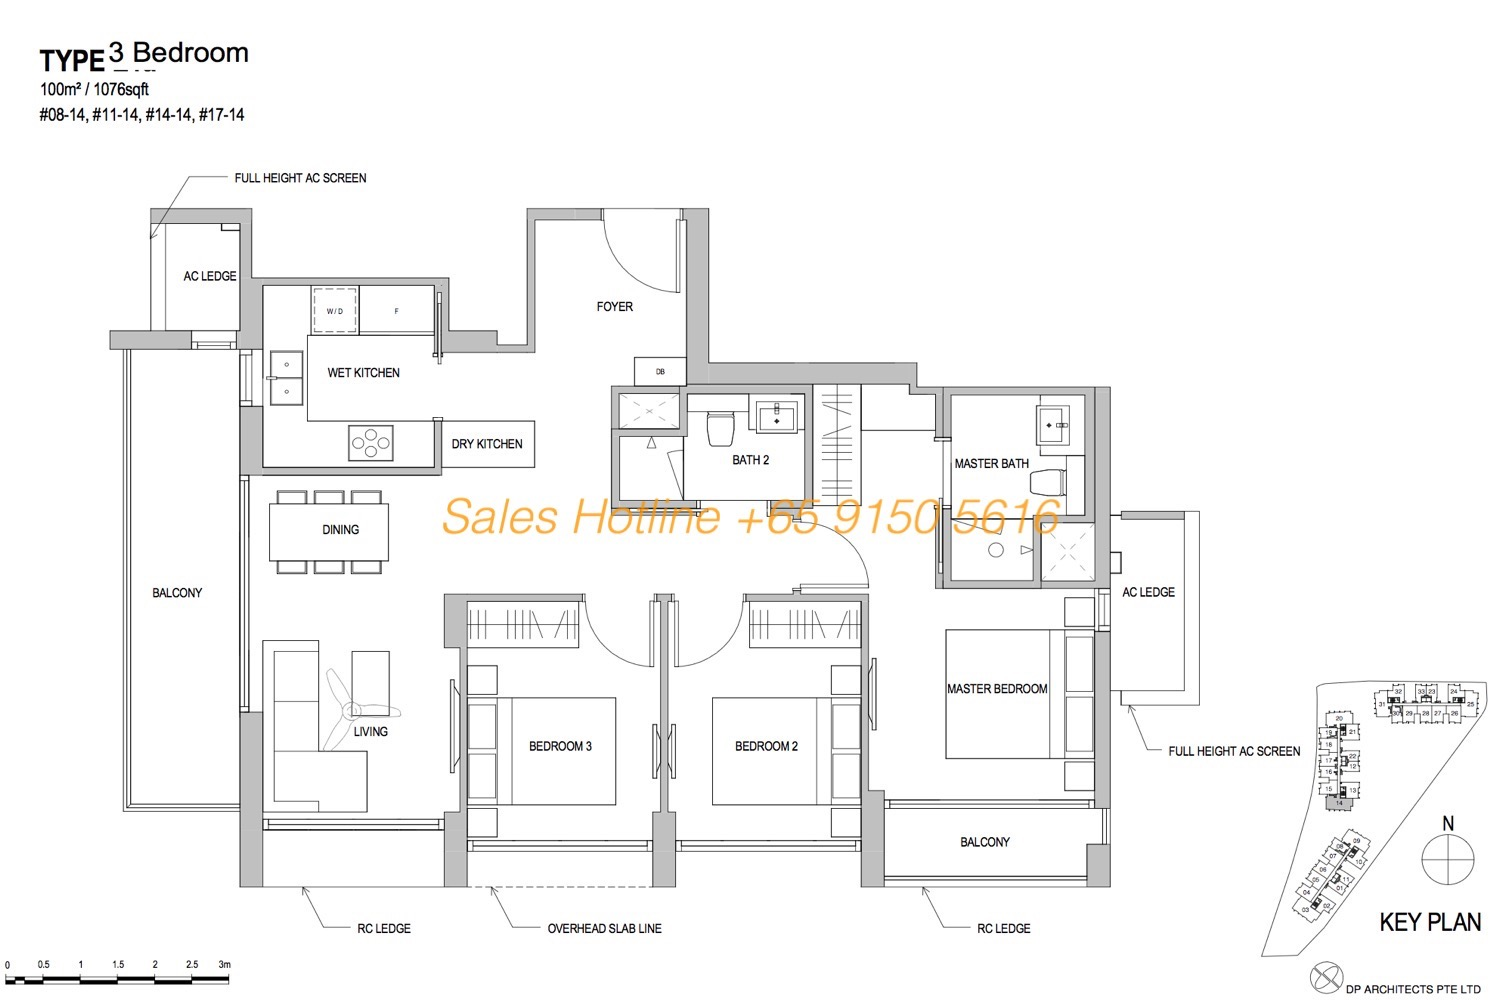 Park Place Residences Floor Plan - 3 Bedroom